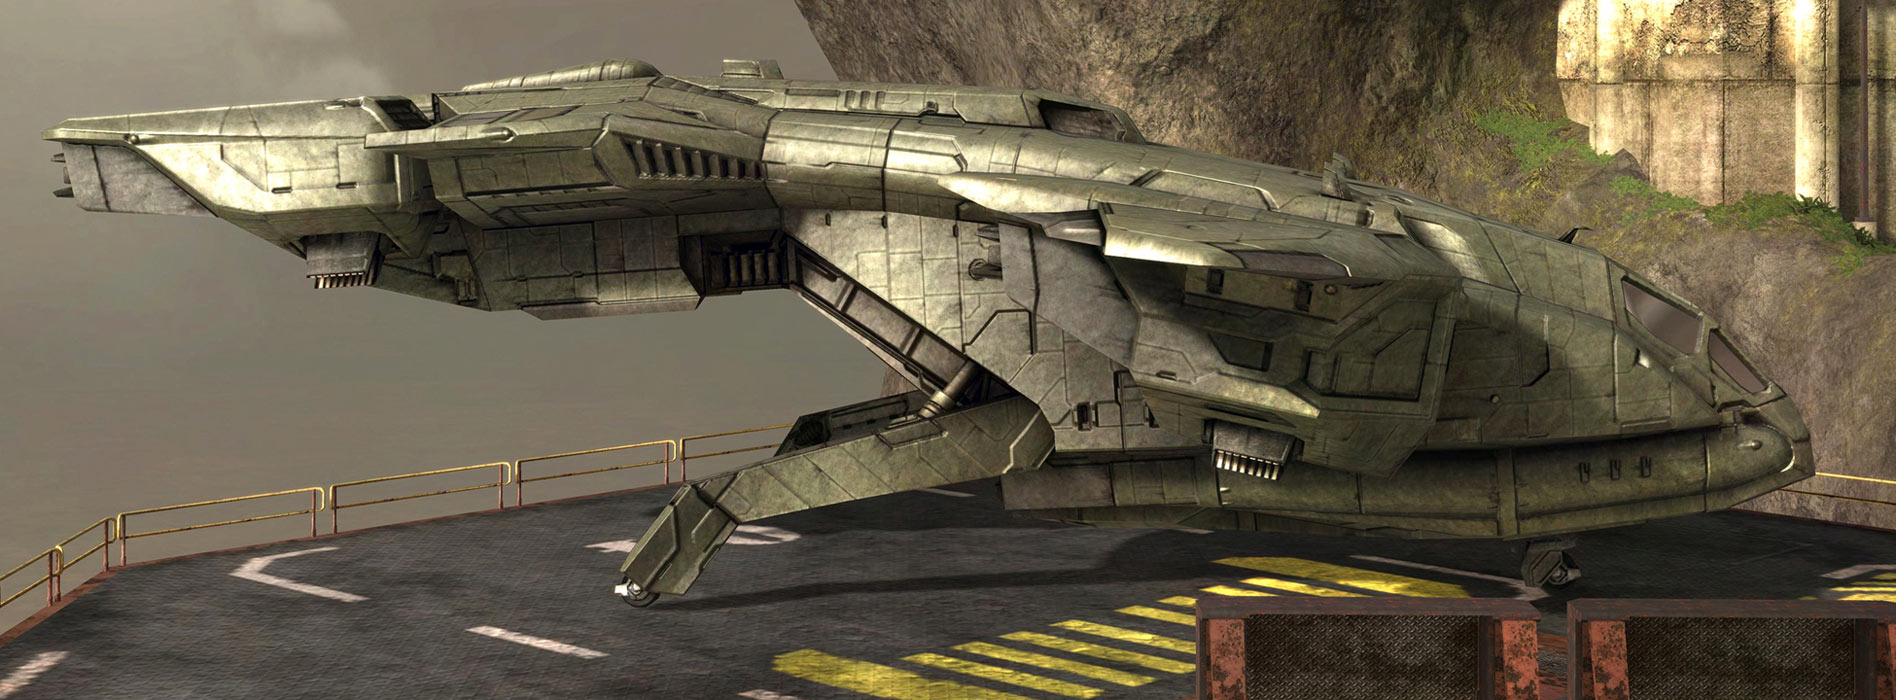 Up Close With The Pelican And Ccs Battlecruiser